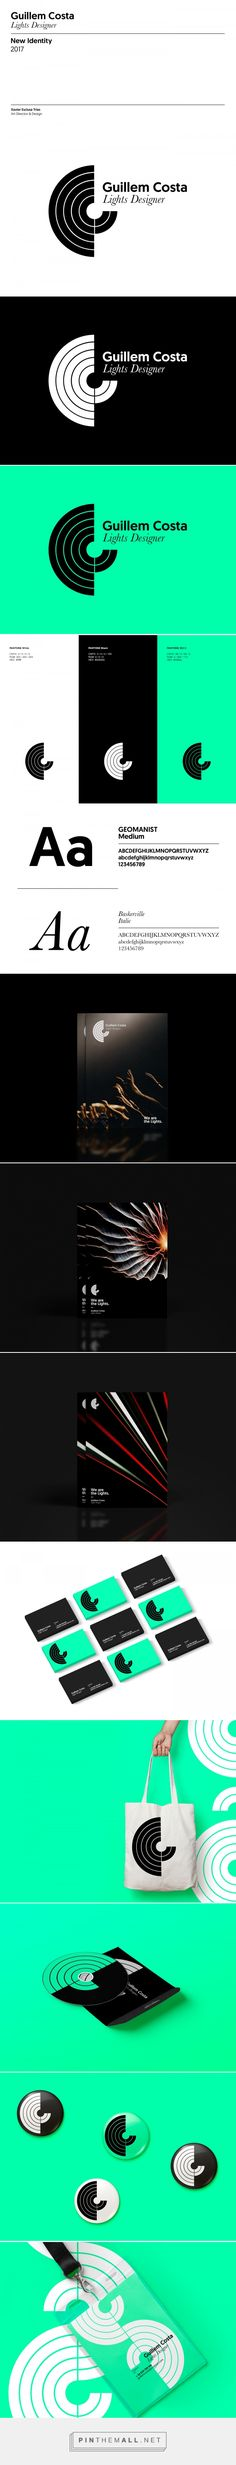 Guillem Costa | Lights Designer Identity on Behance - created via https://pinthemall.net